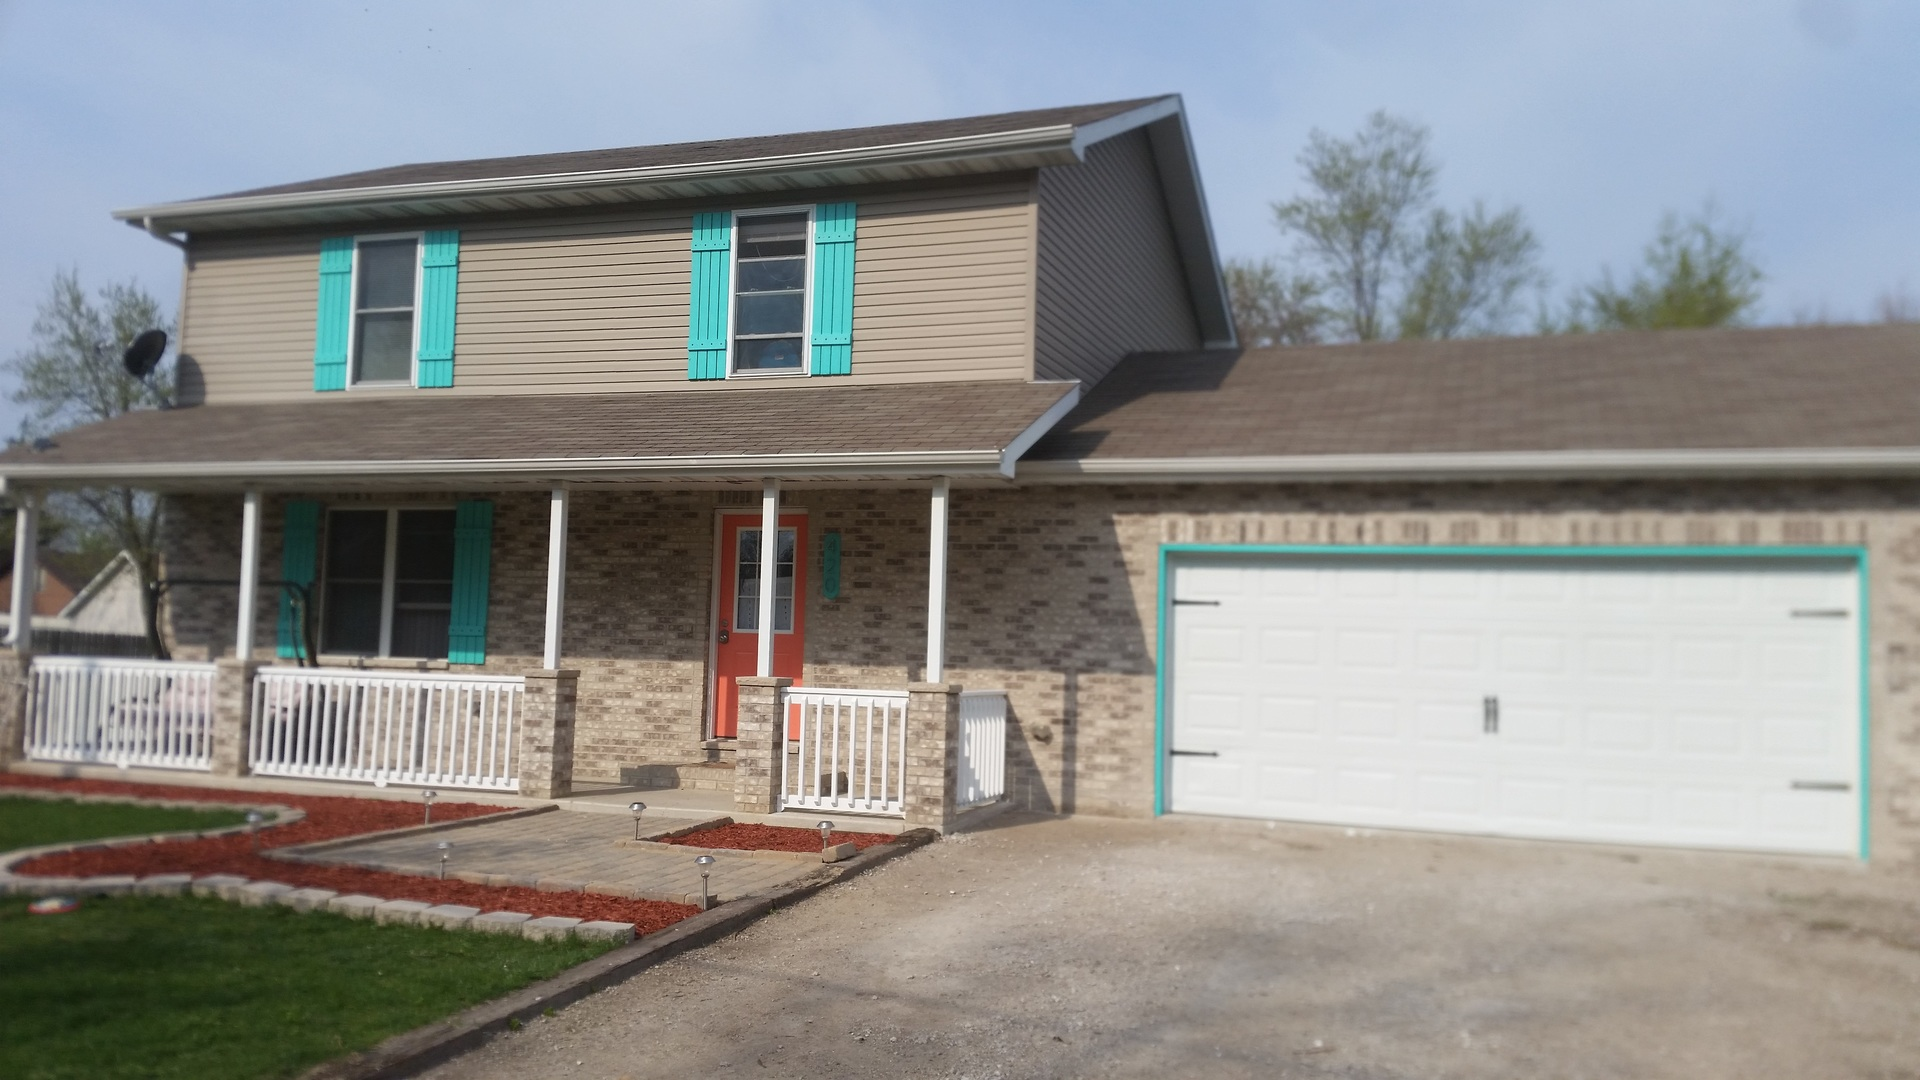 Property for sale at 420 North Merrill Street, Braceville,  IL 60407